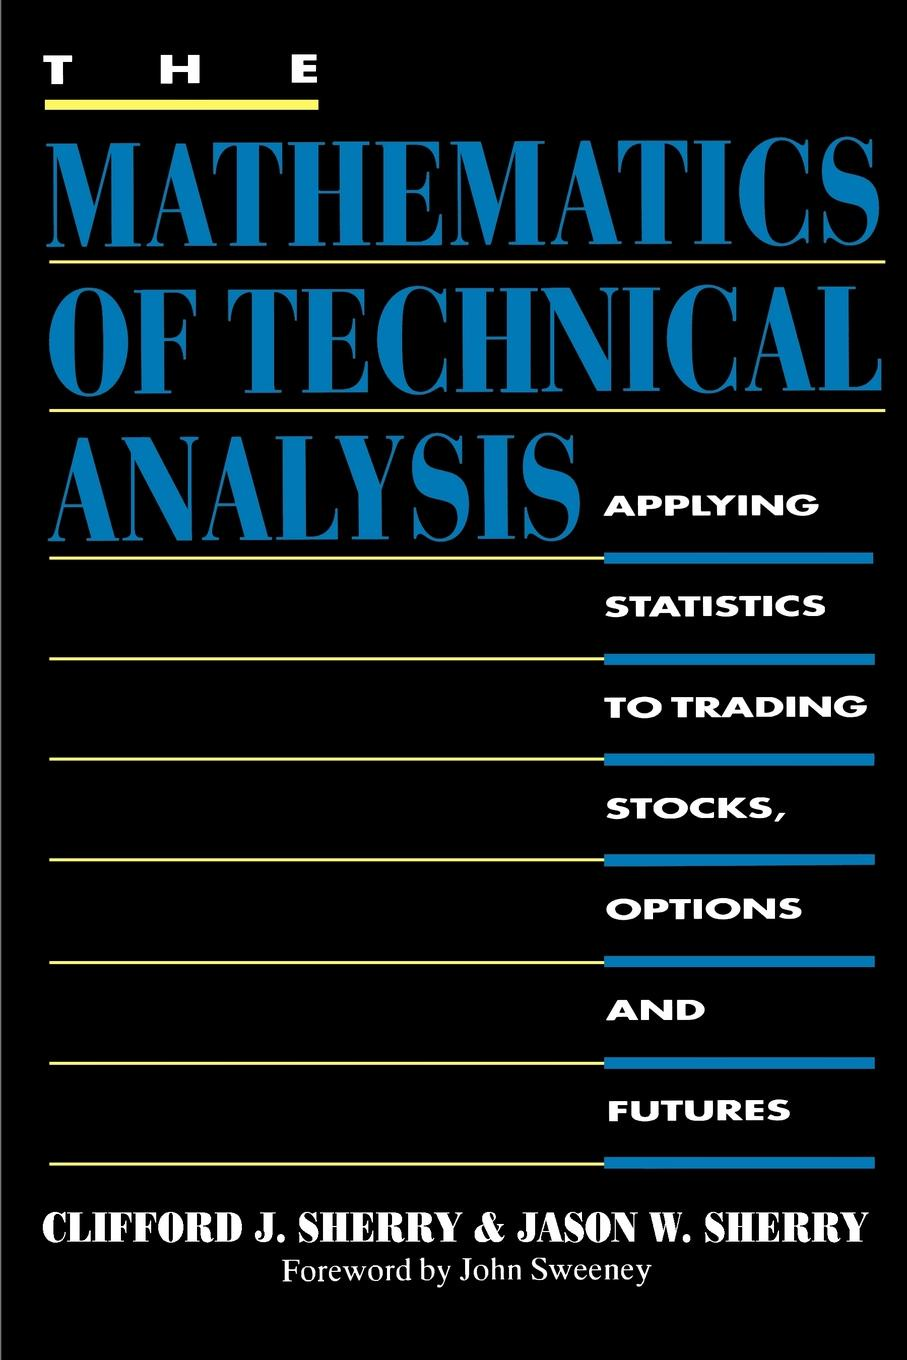 Clifford J. Sherry, Jason W. Sherry The Mathematics of Technical Analysis. Applying Statistics to Trading Stocks, Options and Futures